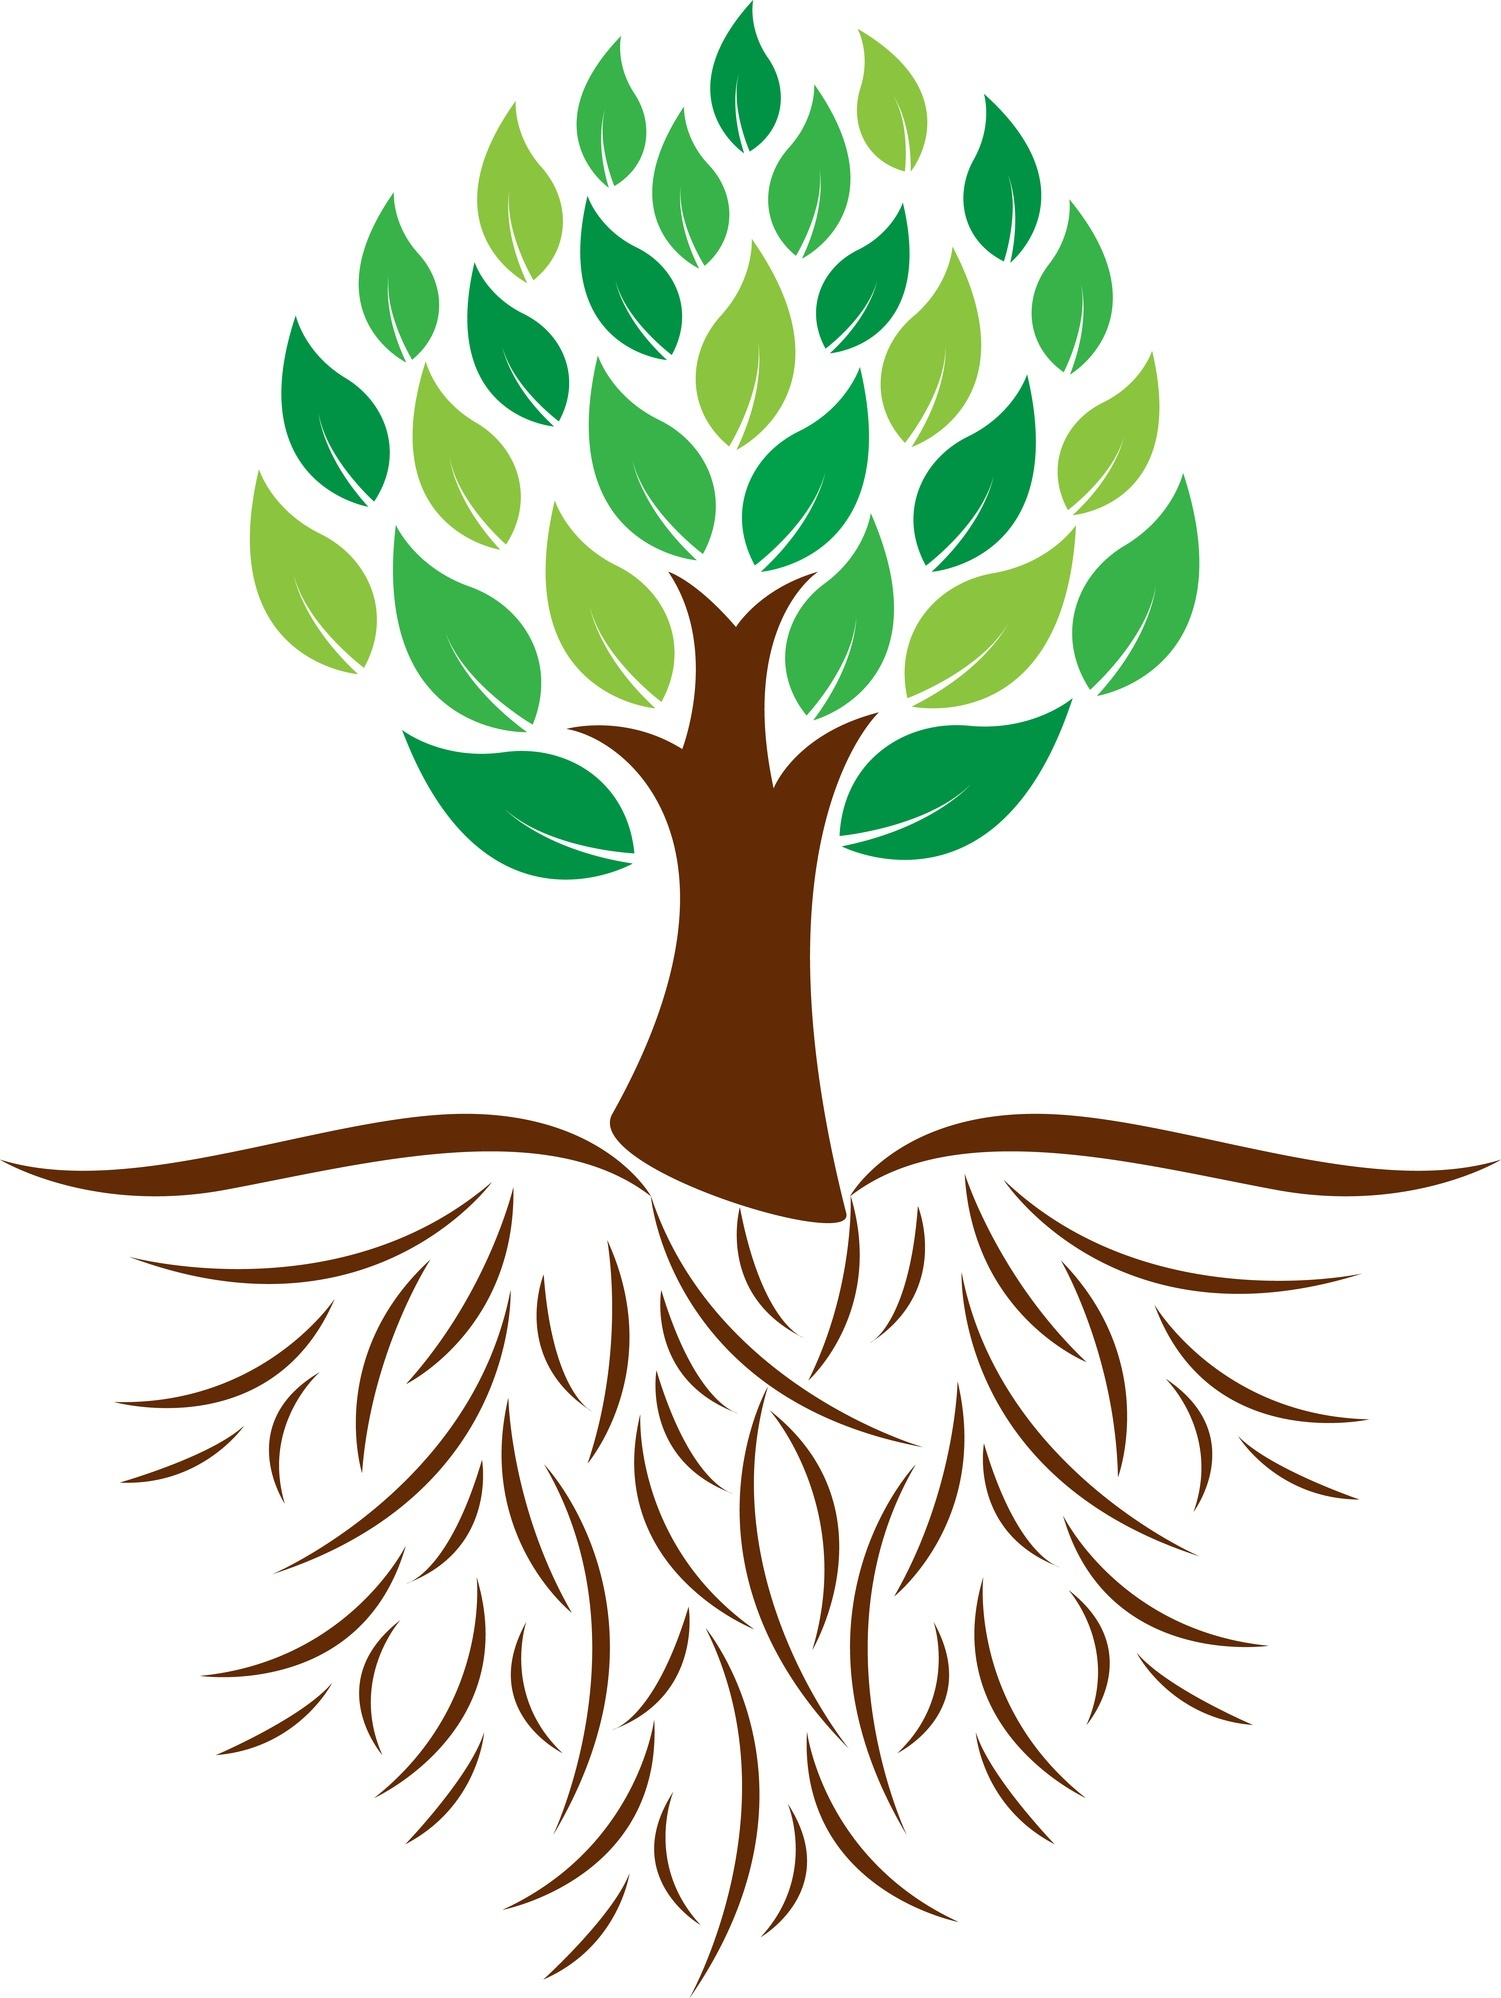 Roots clipart tree illustration Amp art roots Images with